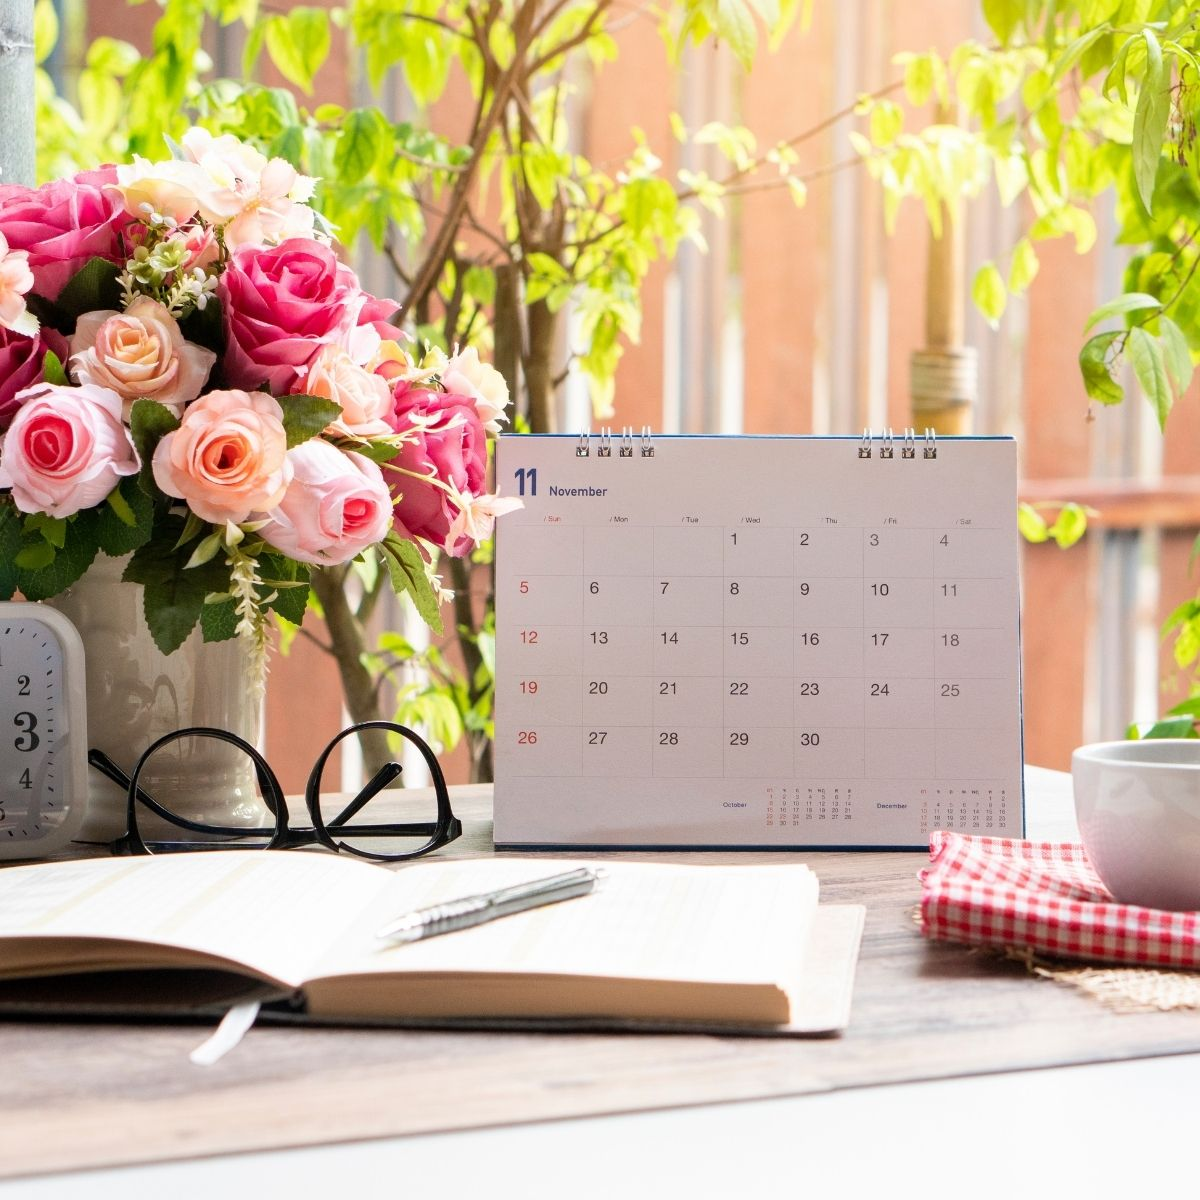 a jouranl, vase of flowers and a blank calendar on a table